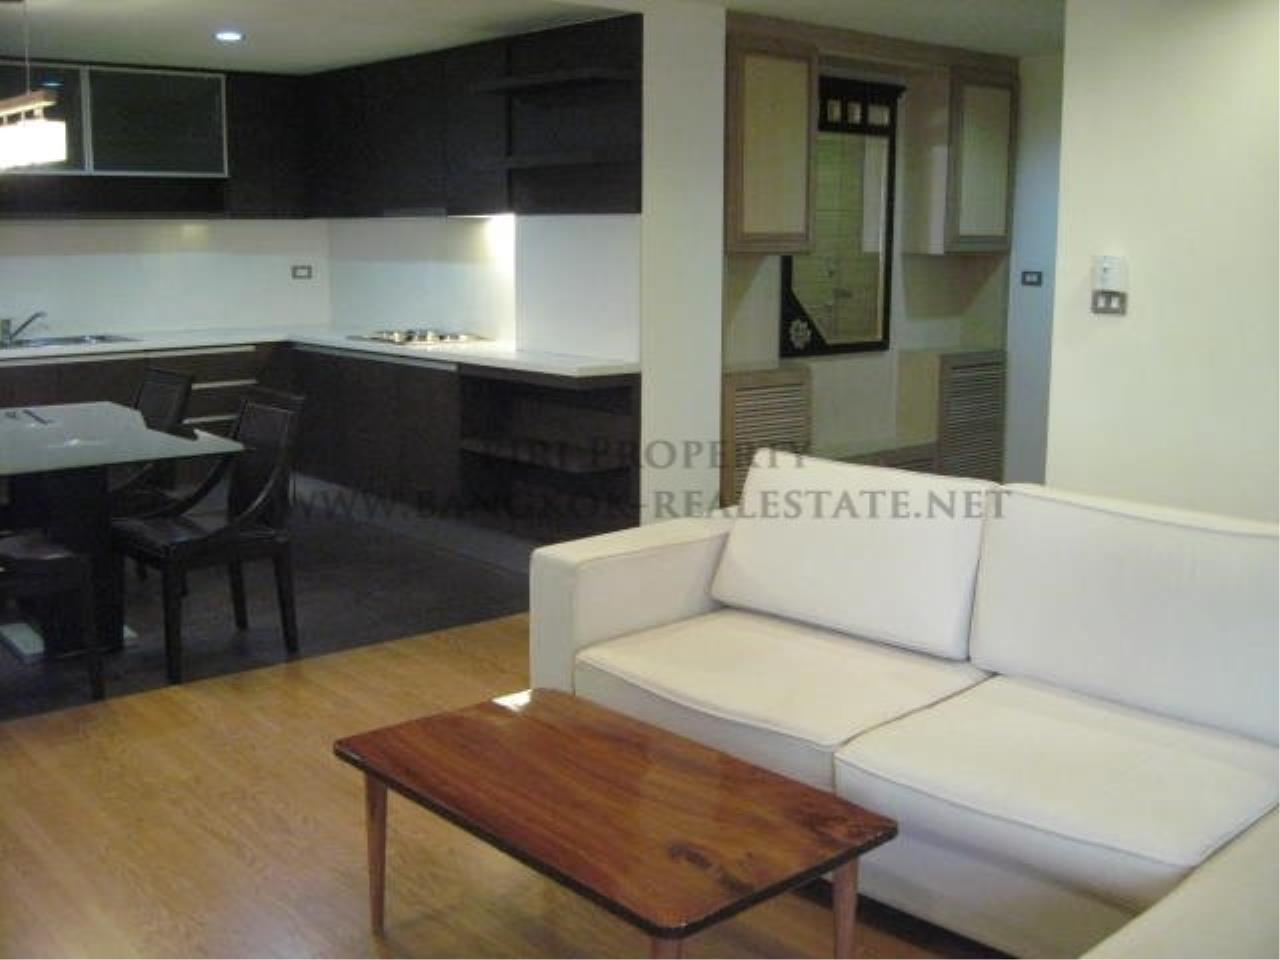 Piri Property Agency's Two Bedroom Condo with direct pool access - 59 Heritage in Ekkamai for Sale 6